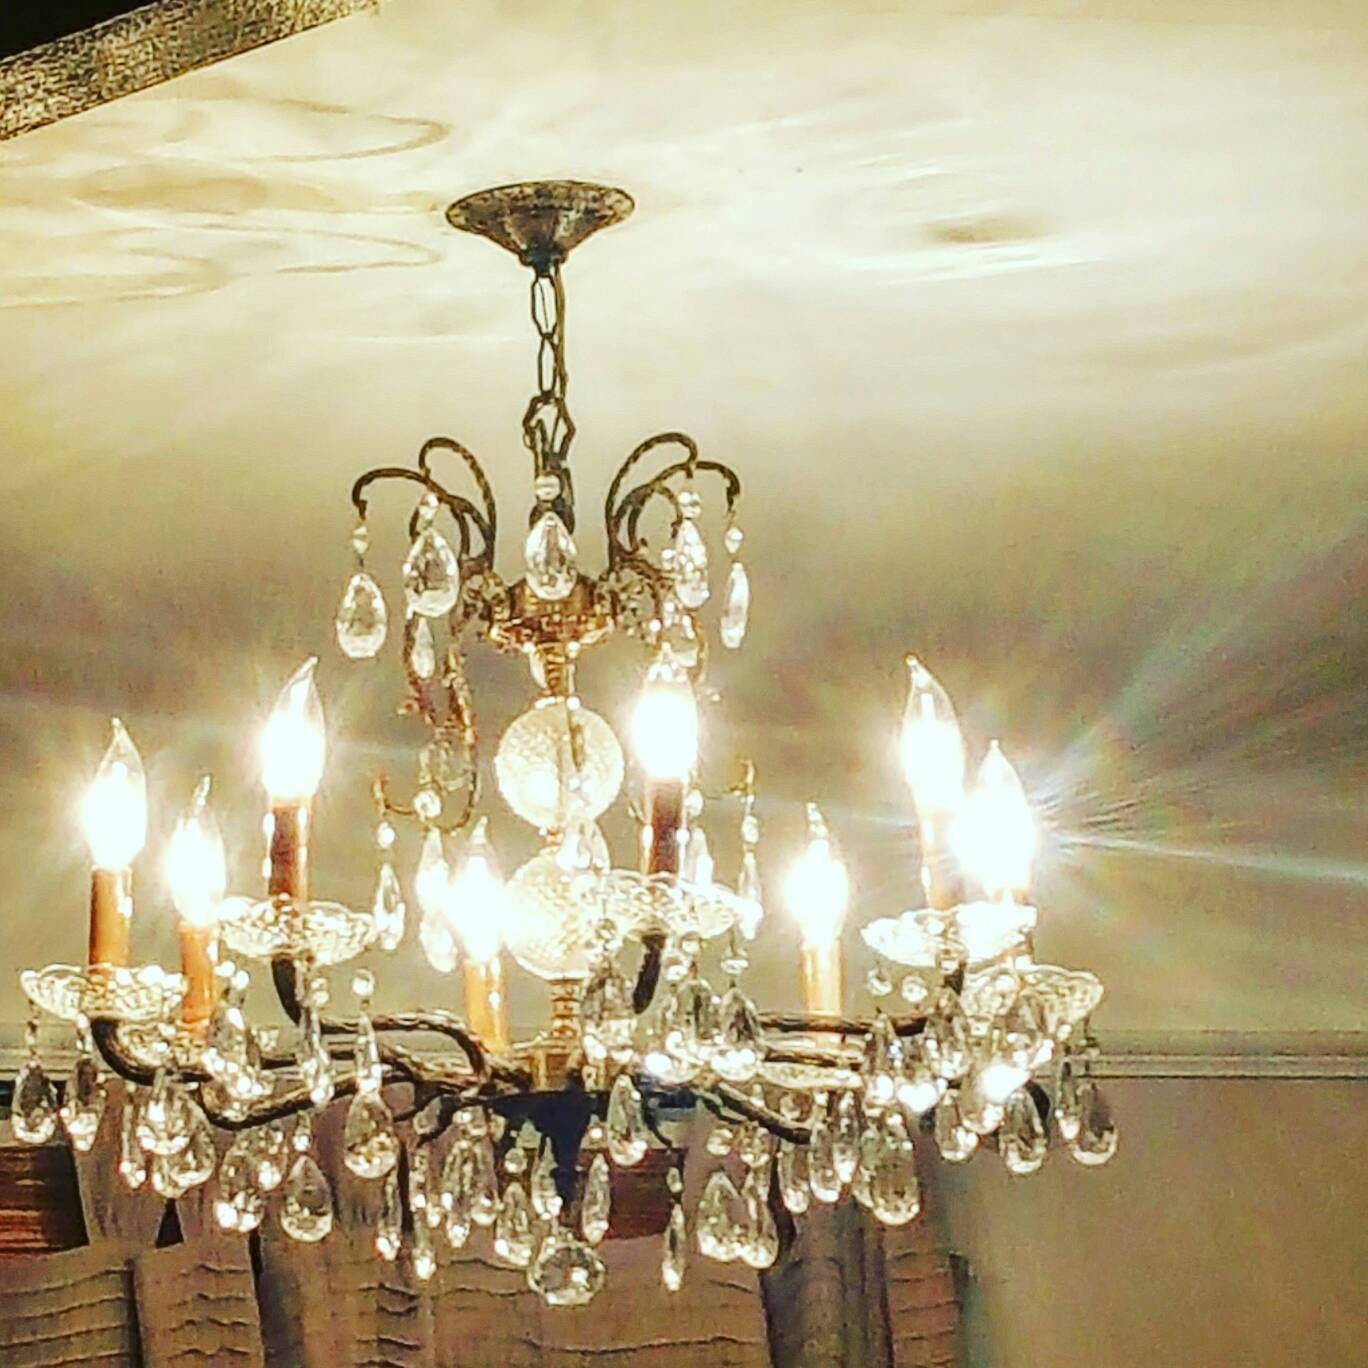 Antique chandelier 8 bulbs made in spain underwriter laboratories arubaitofo Image collections